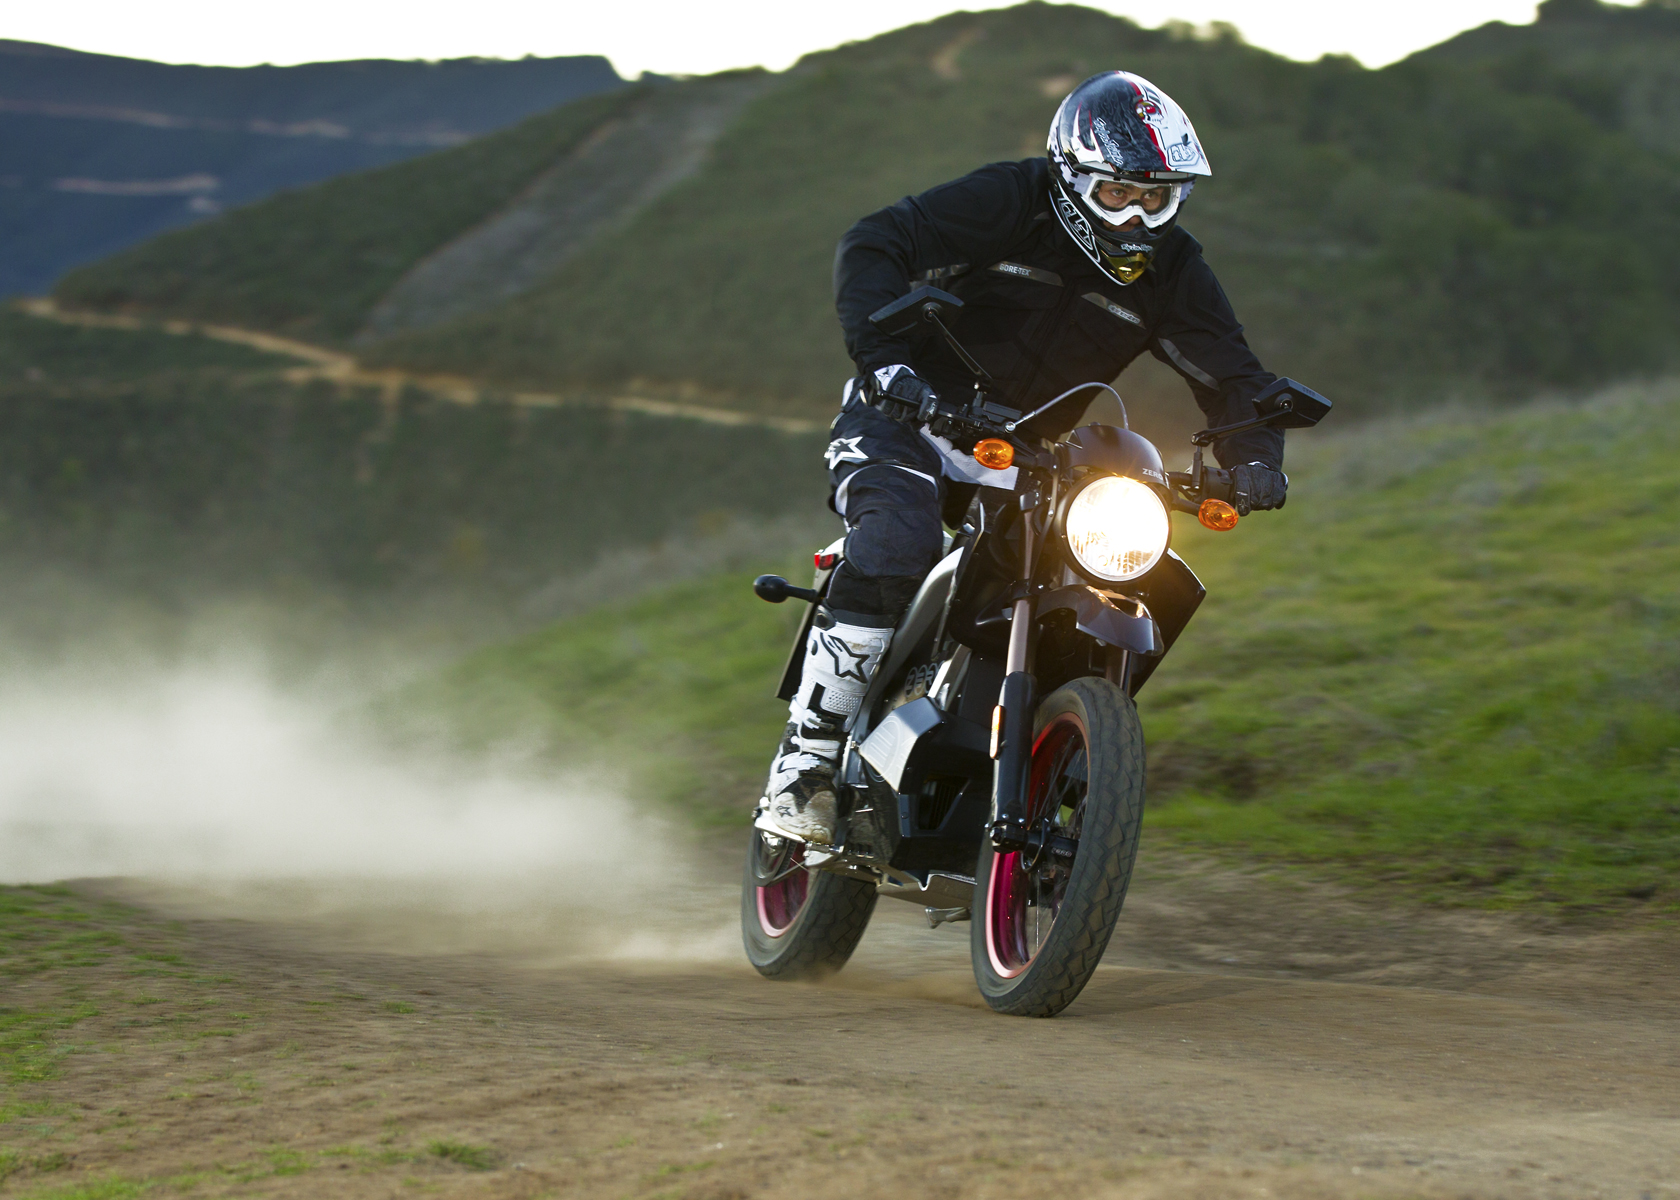 2011 Zero DS Electric Motorcycle: Charging Down a Dirt Road